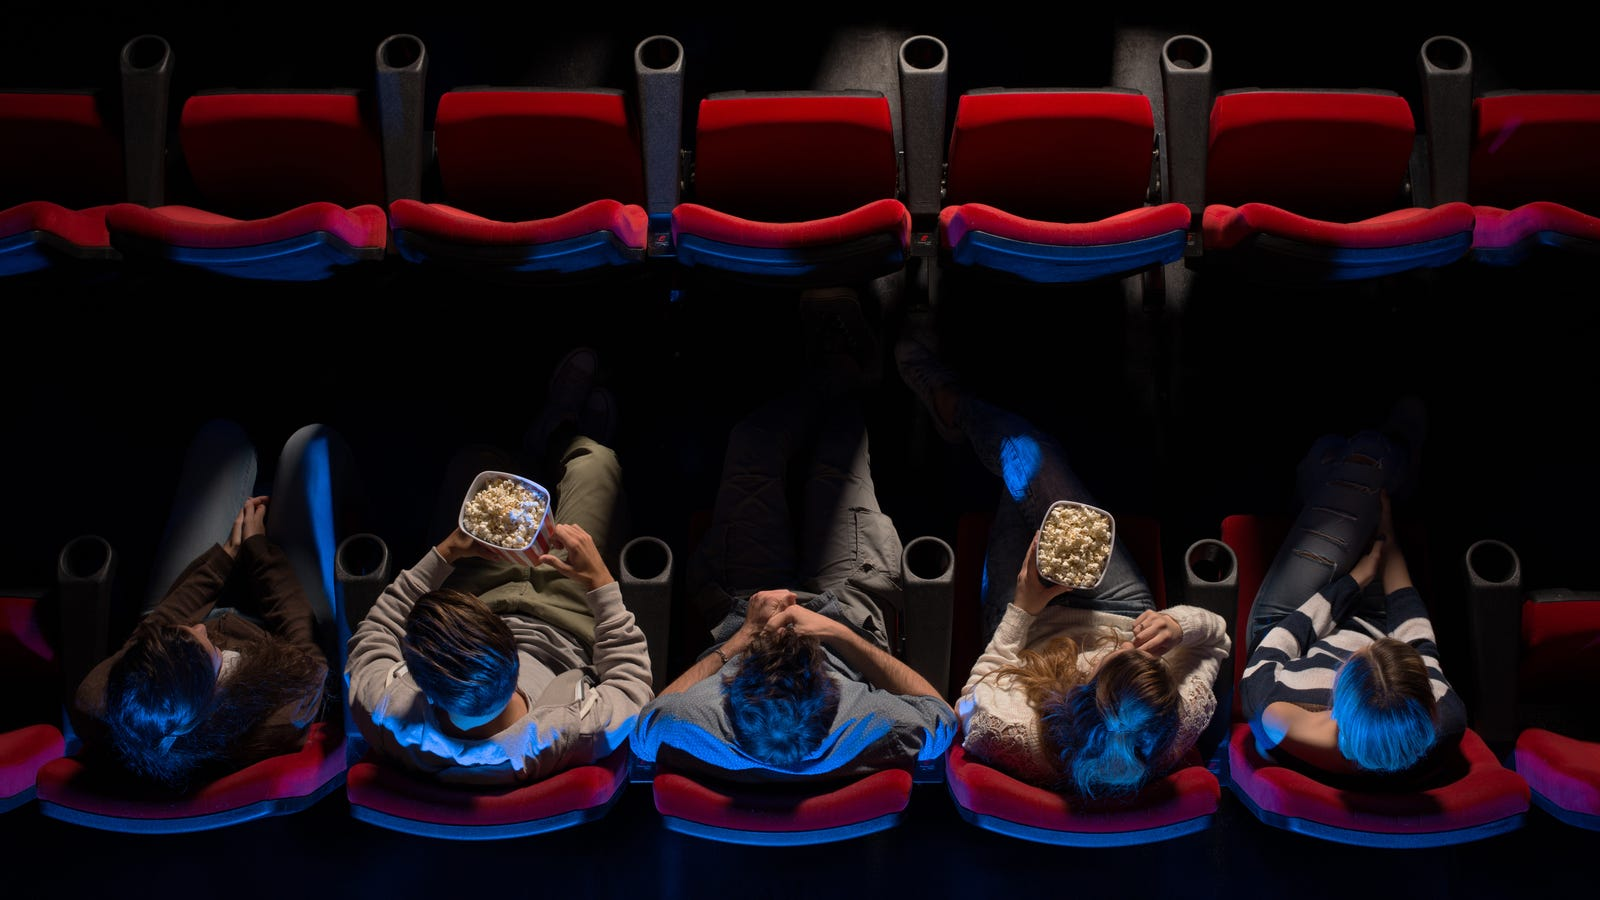 The Best Seat In the Movie Theater, According to a THX Engineer